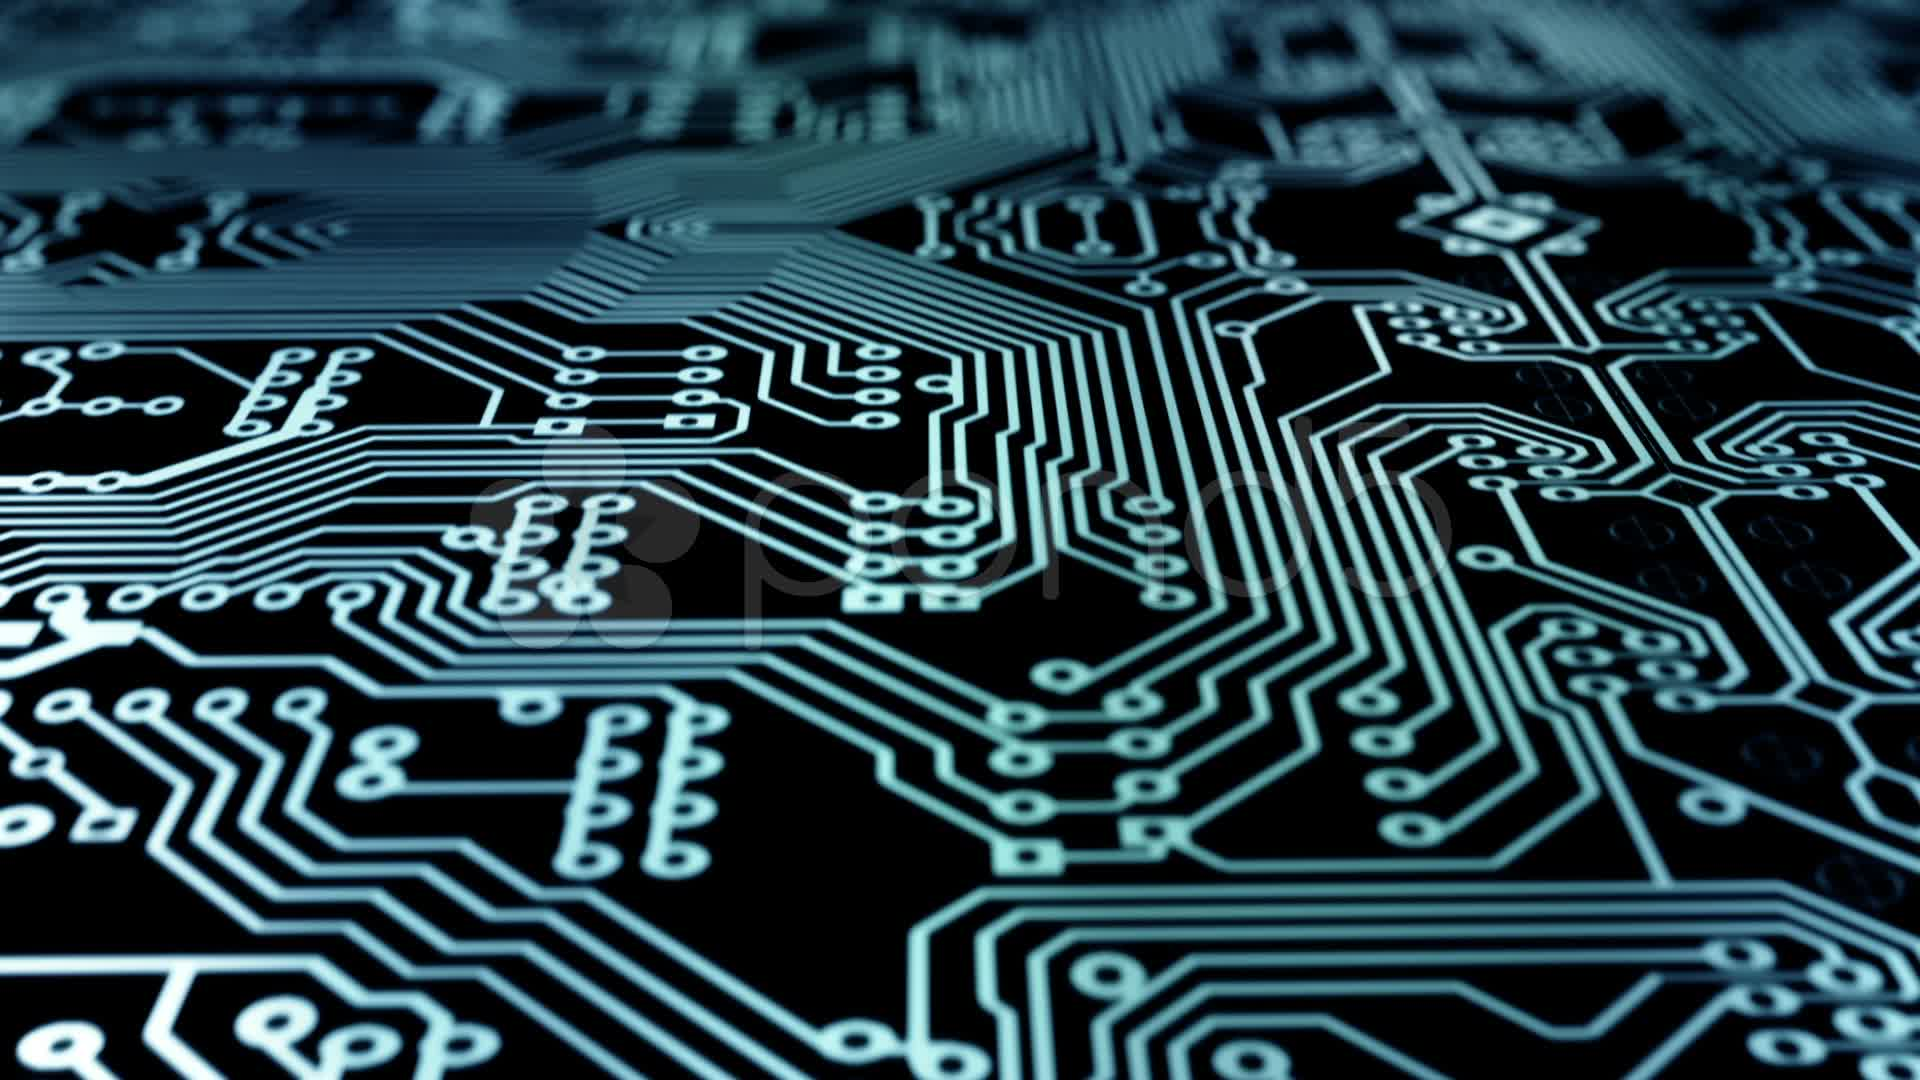 Pcb Board Wallpapers Wallpaper Cave Pics Photos Desktop Printed Circuit Pictures Wallpaperwiki Full Hd Background Pic